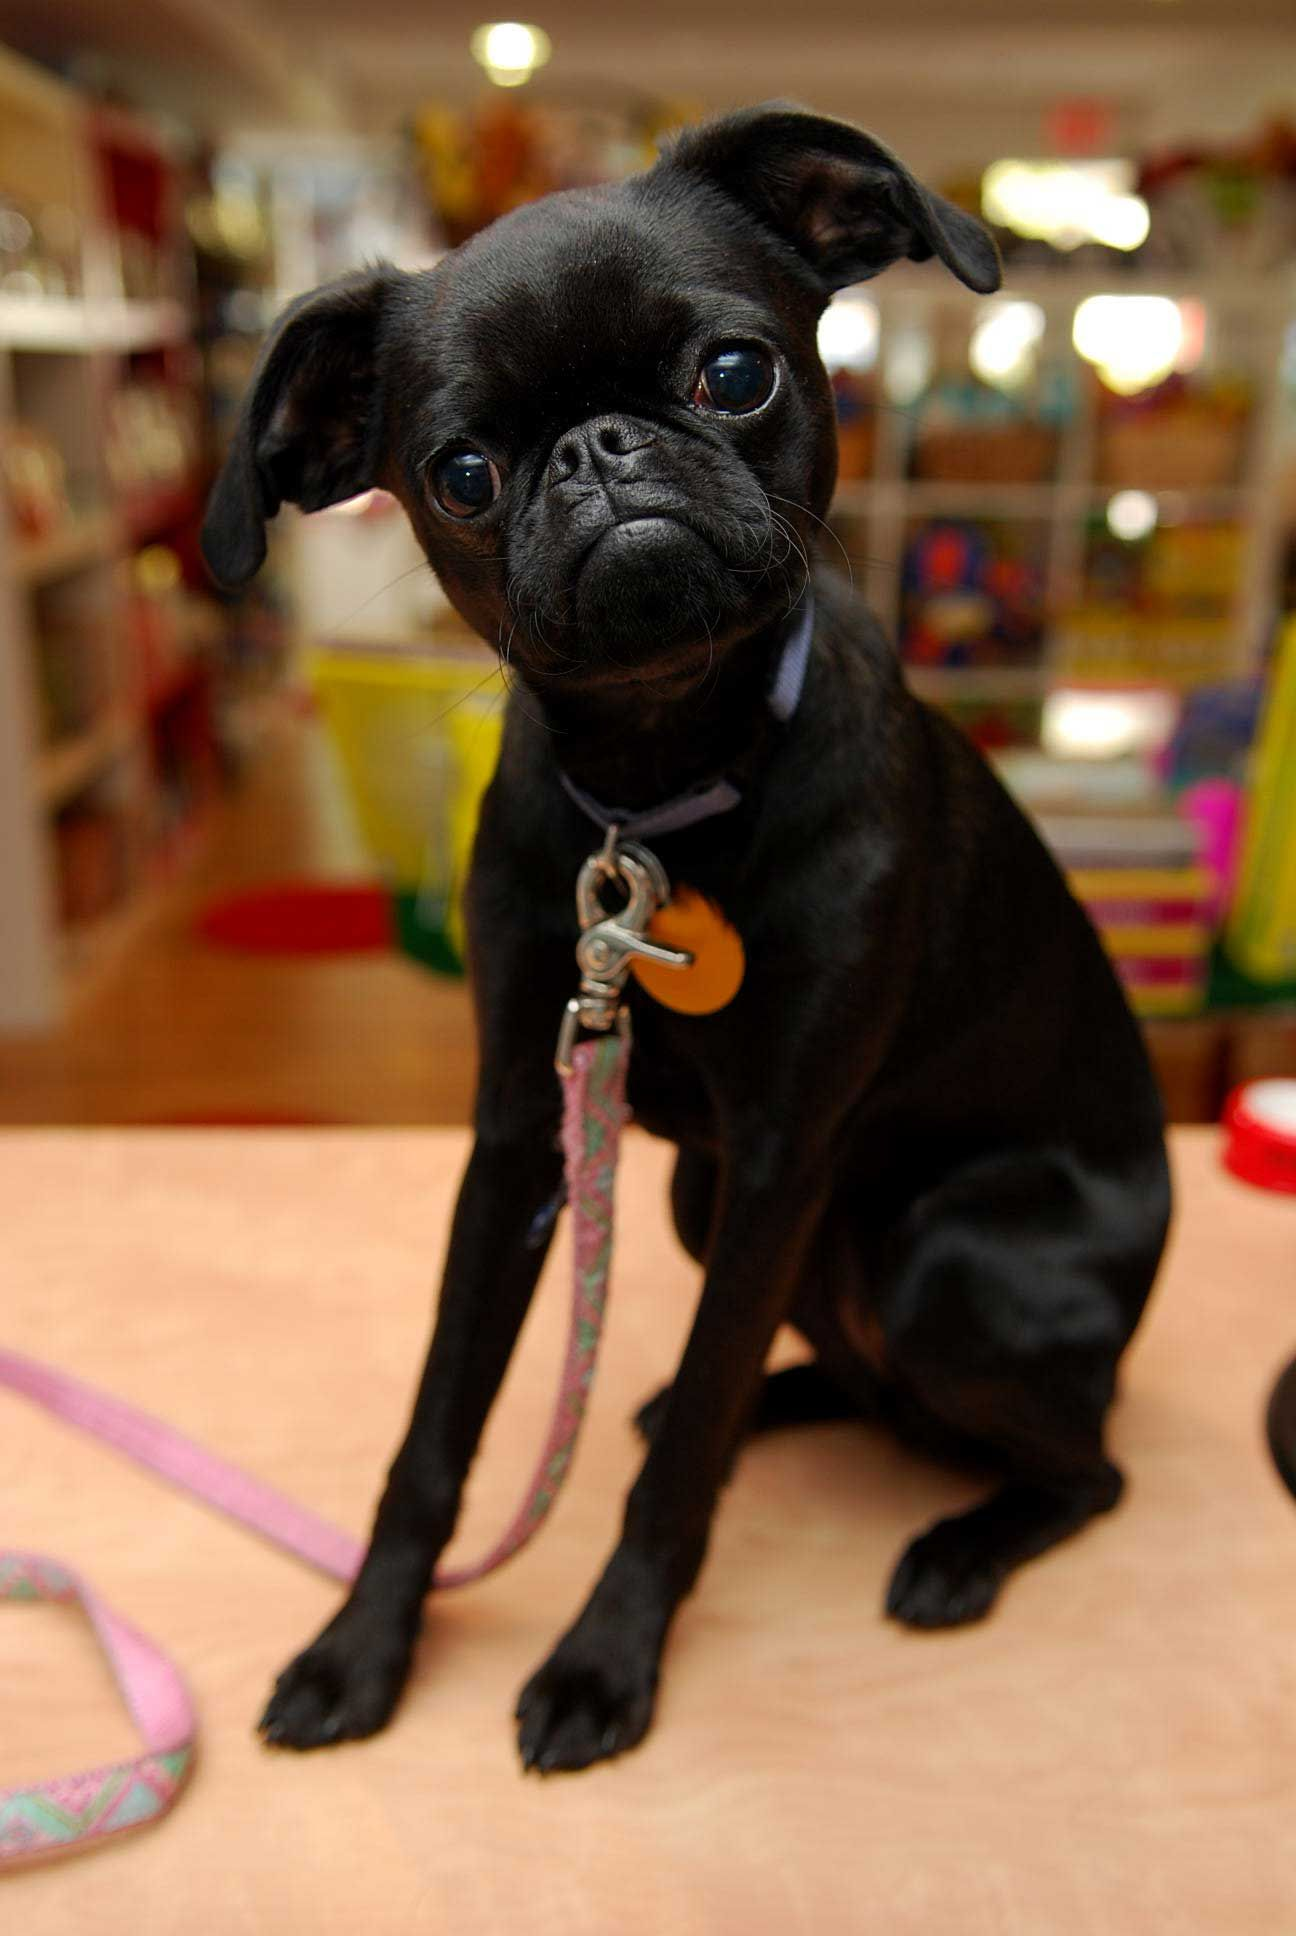 Black Brussels Griffon Puppy! @Jessica Brown You need this